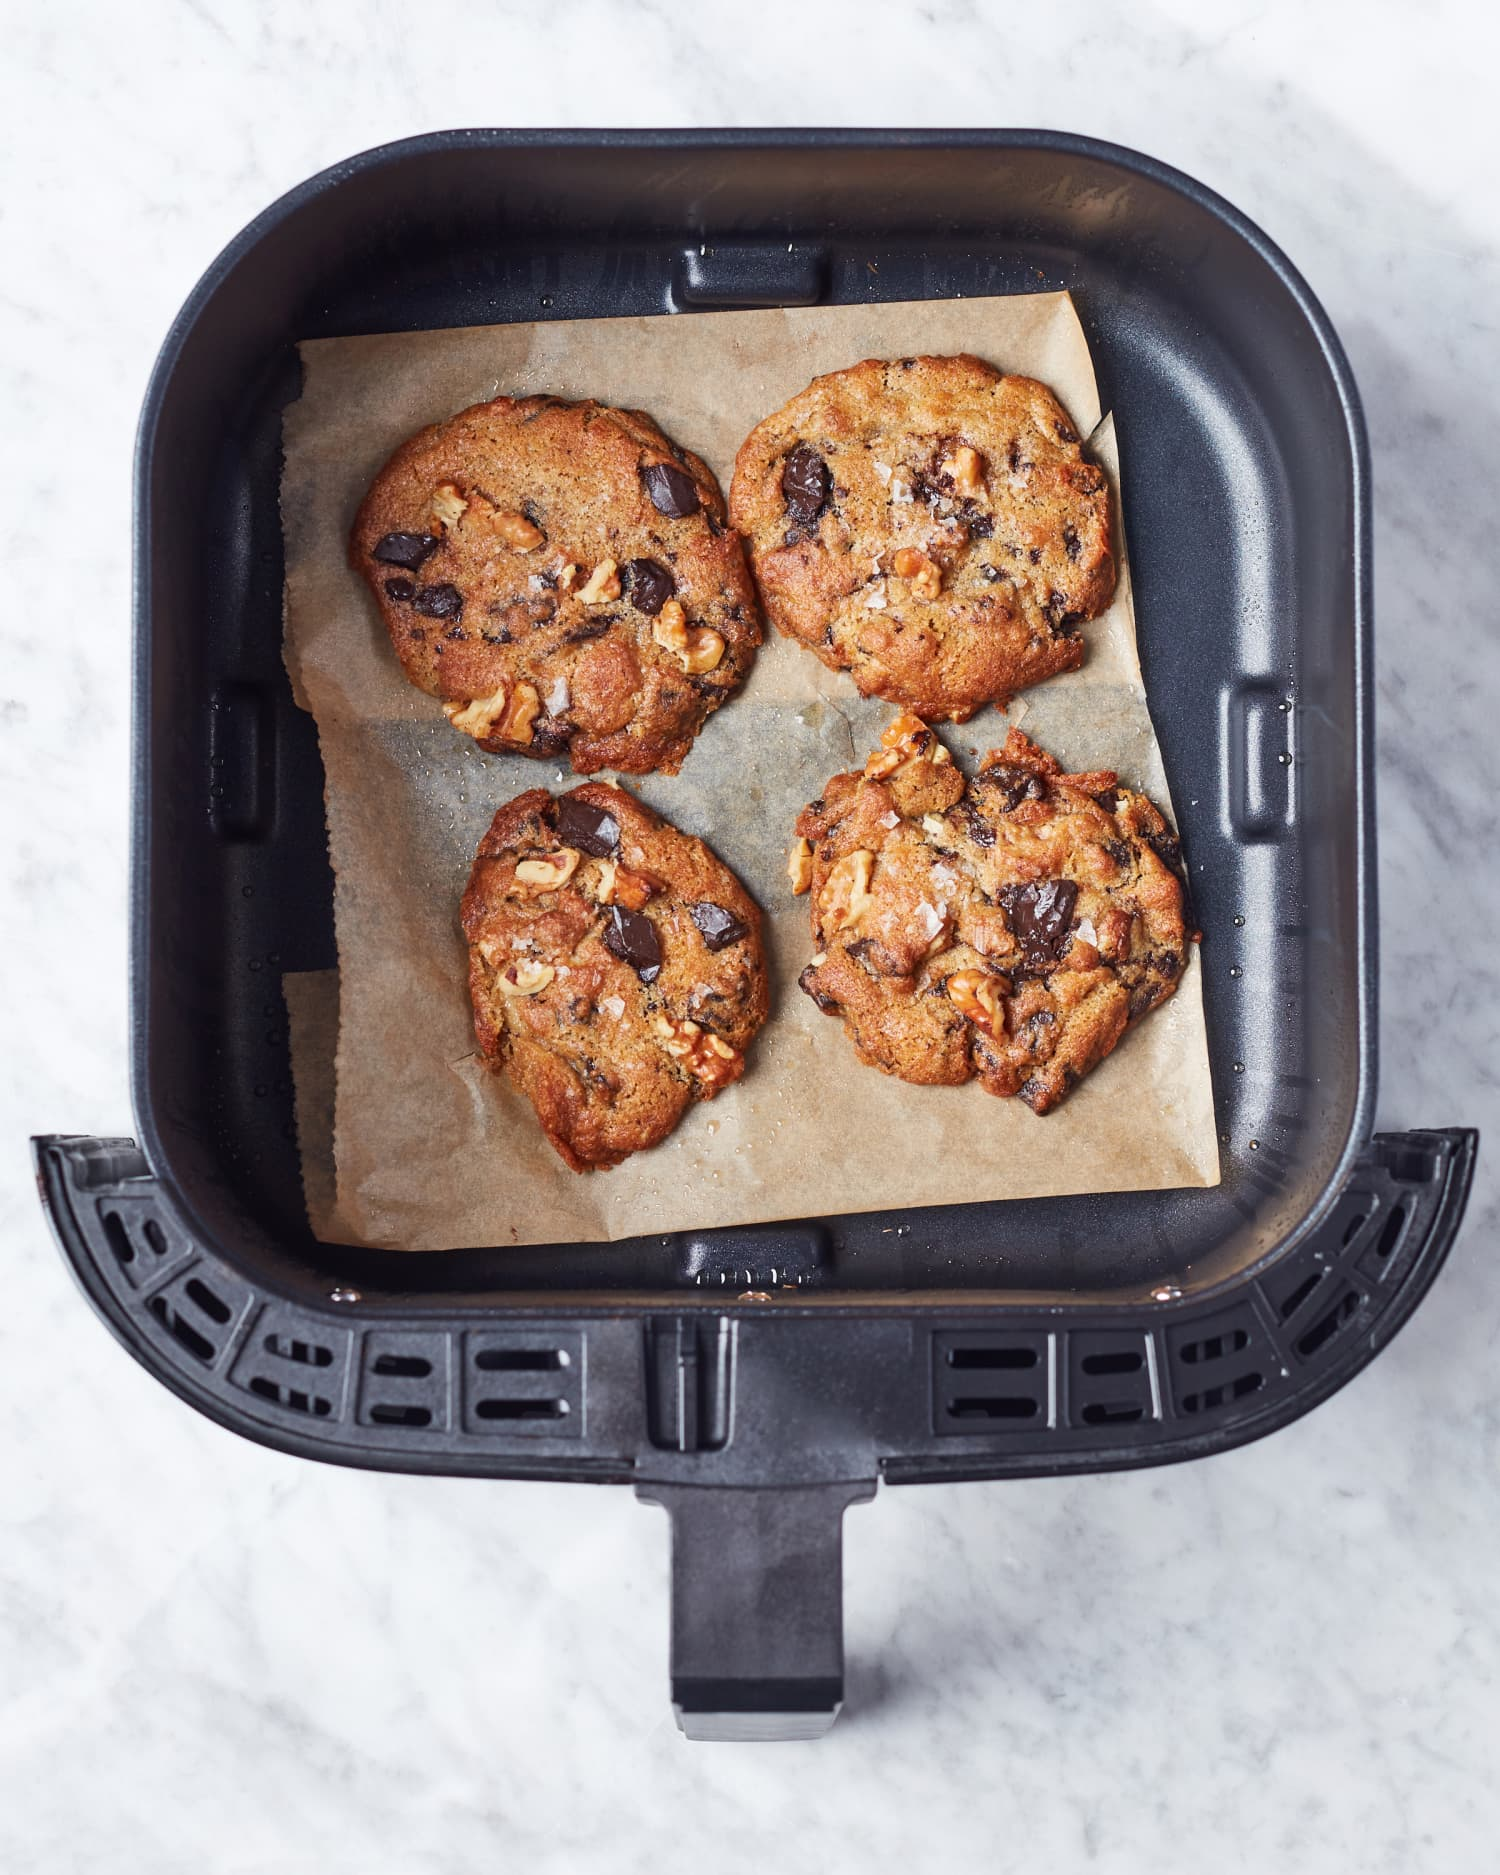 Tips For Making Cookies In An Air Fryer